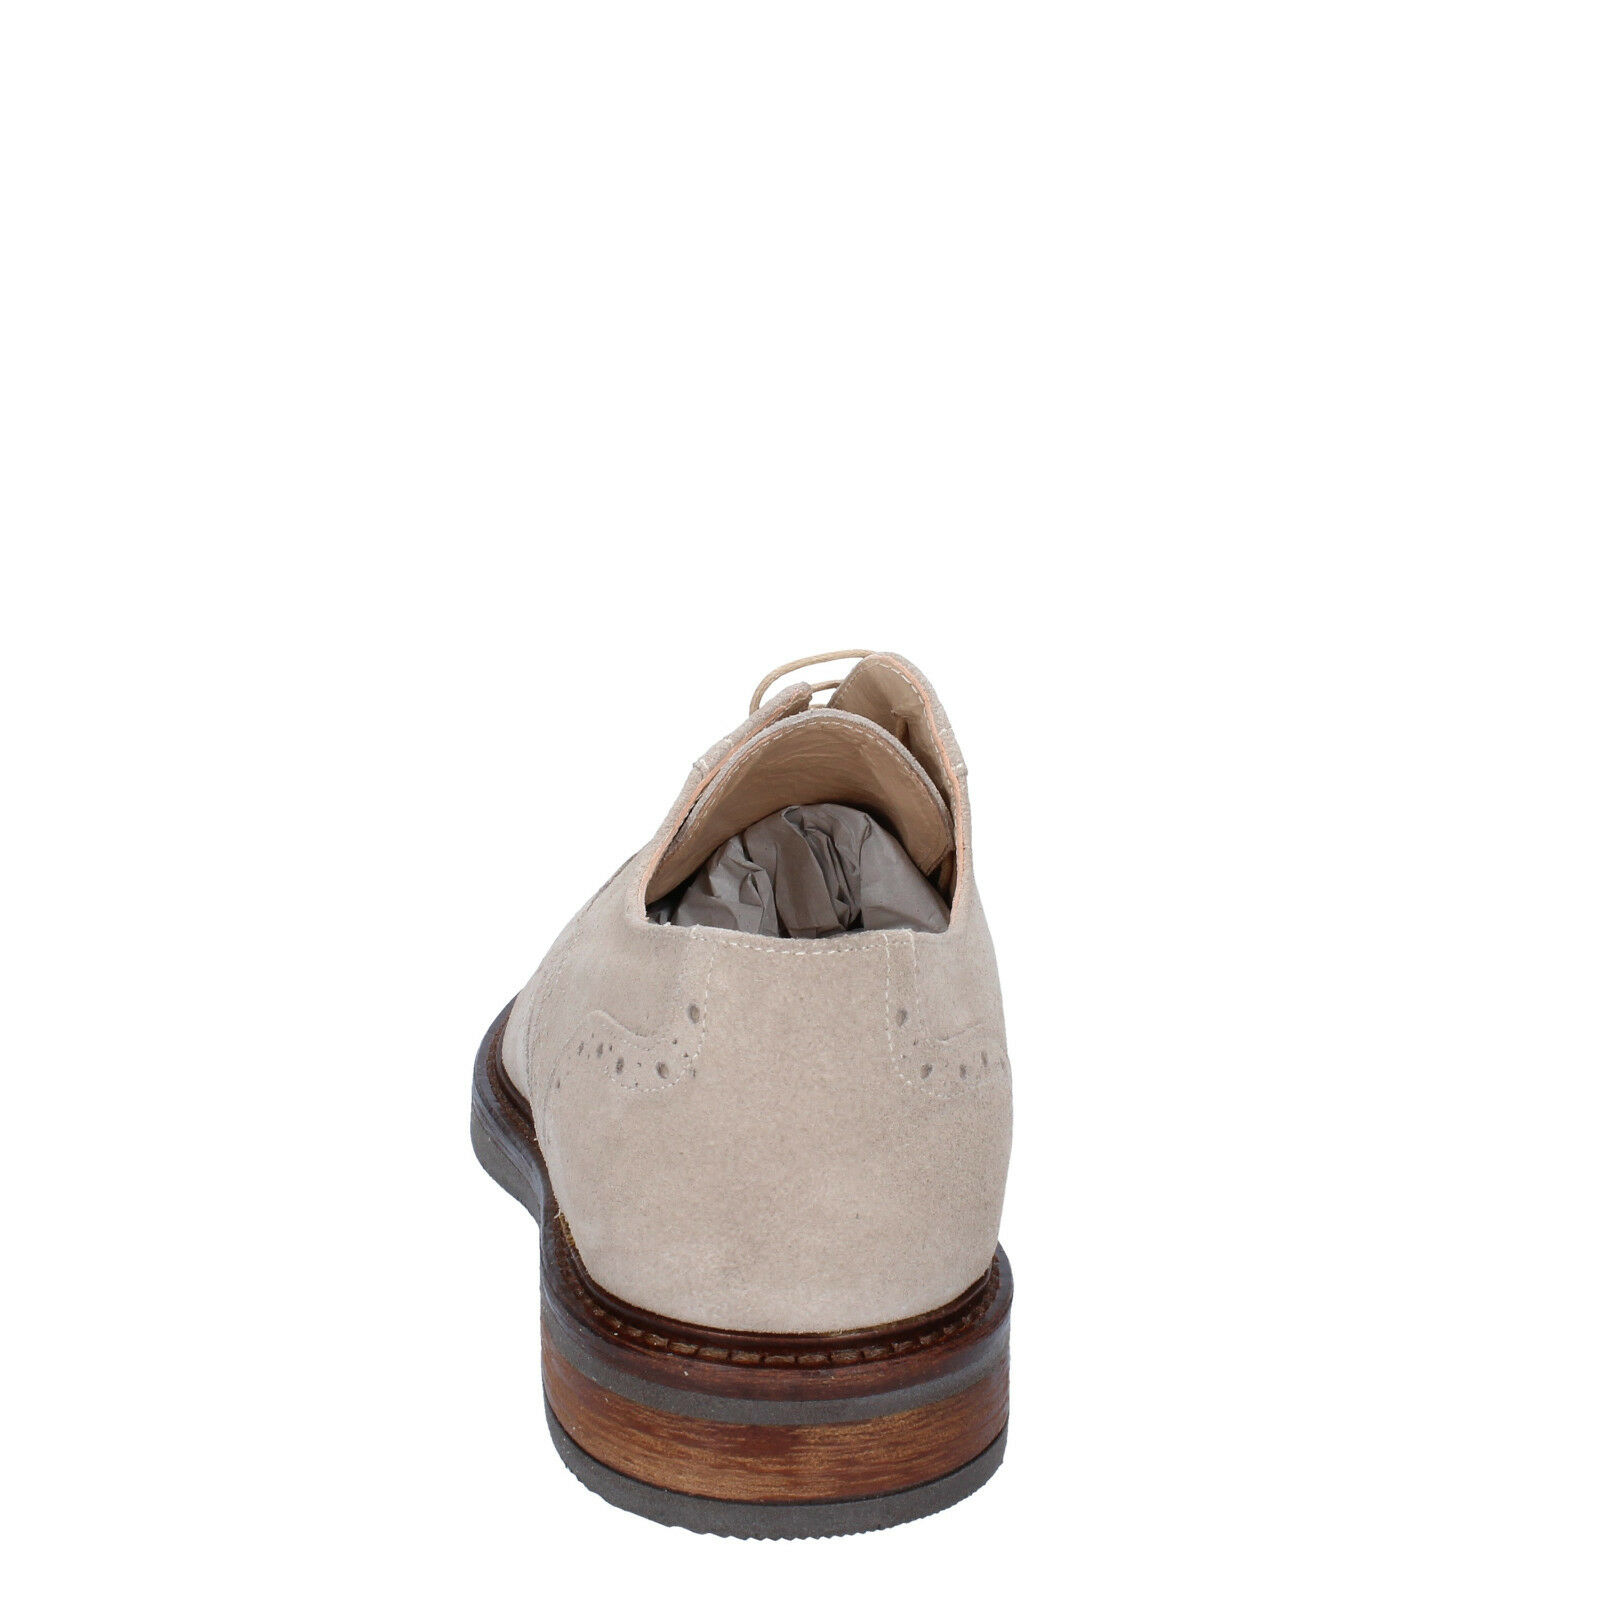 Herren schuhe FDF SHOES wildleder 43 EU elegante beige wildleder SHOES BZ343-E 44cd41